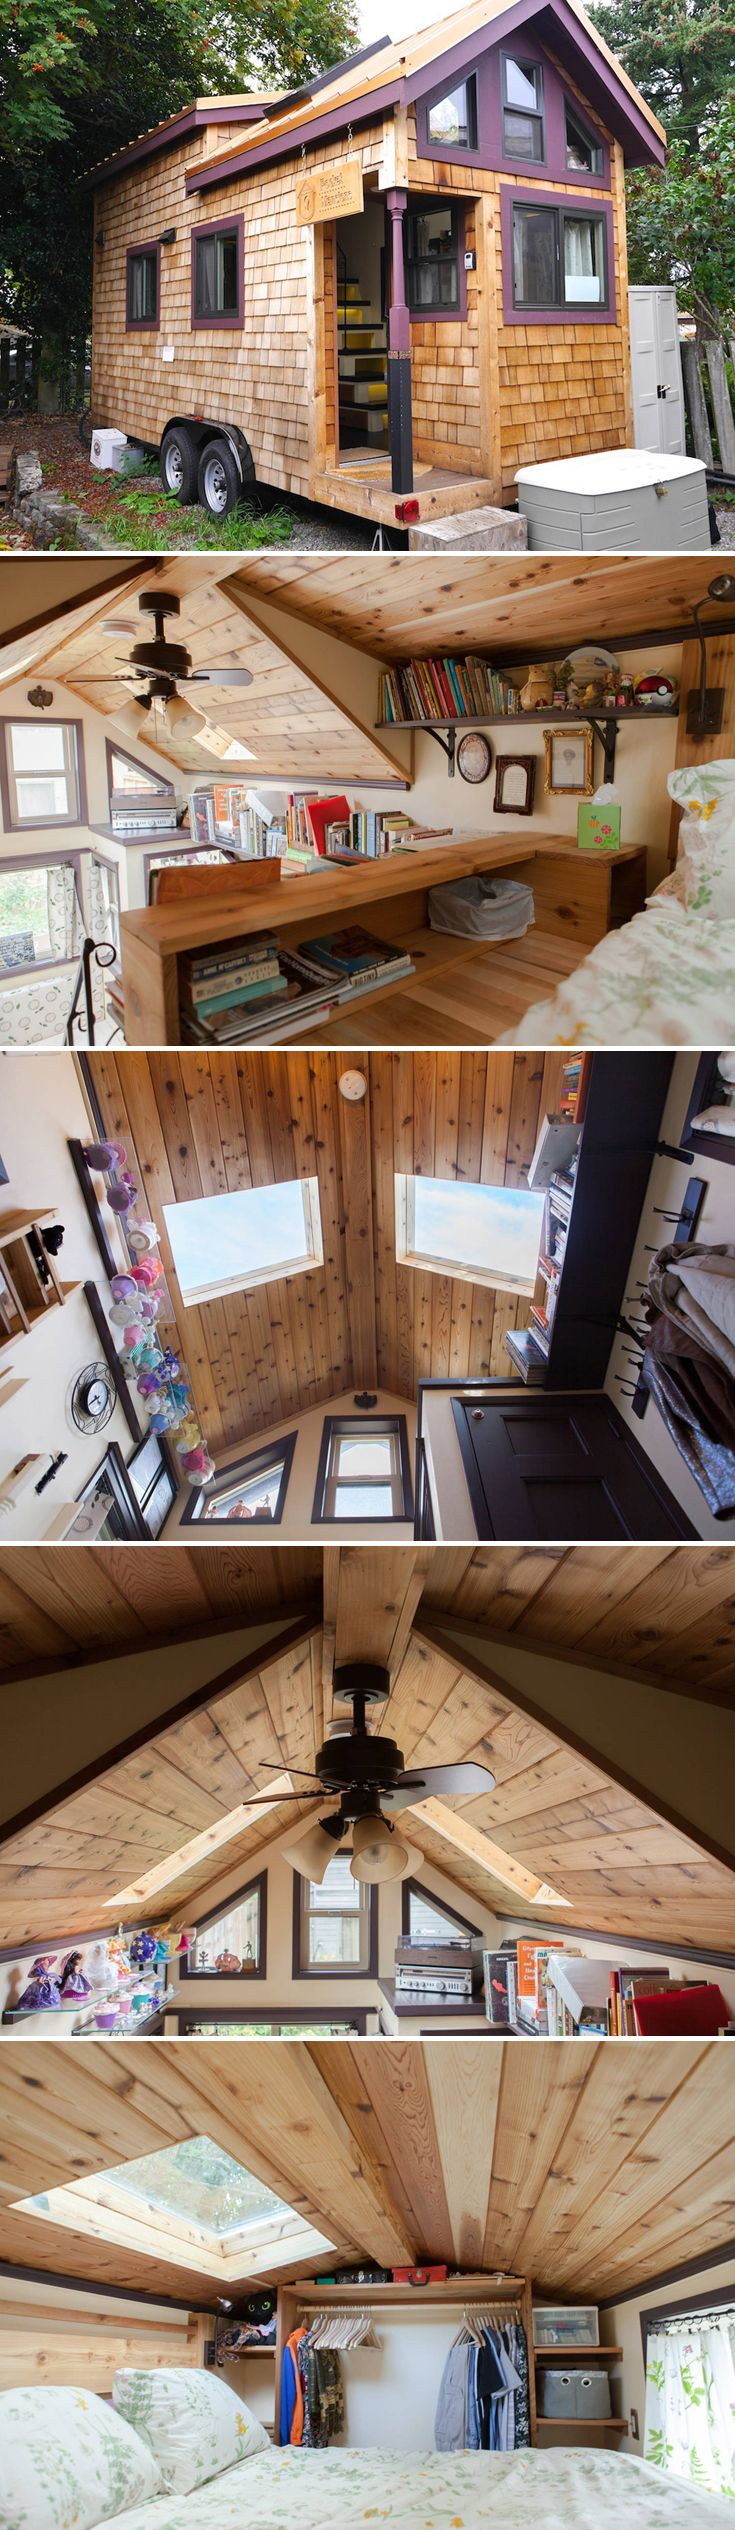 Ready to give tiny living a try? The Maiden Mansion is located in Seattle, WA and it's available for nightly rental through Airbnb, starting at $99/night.